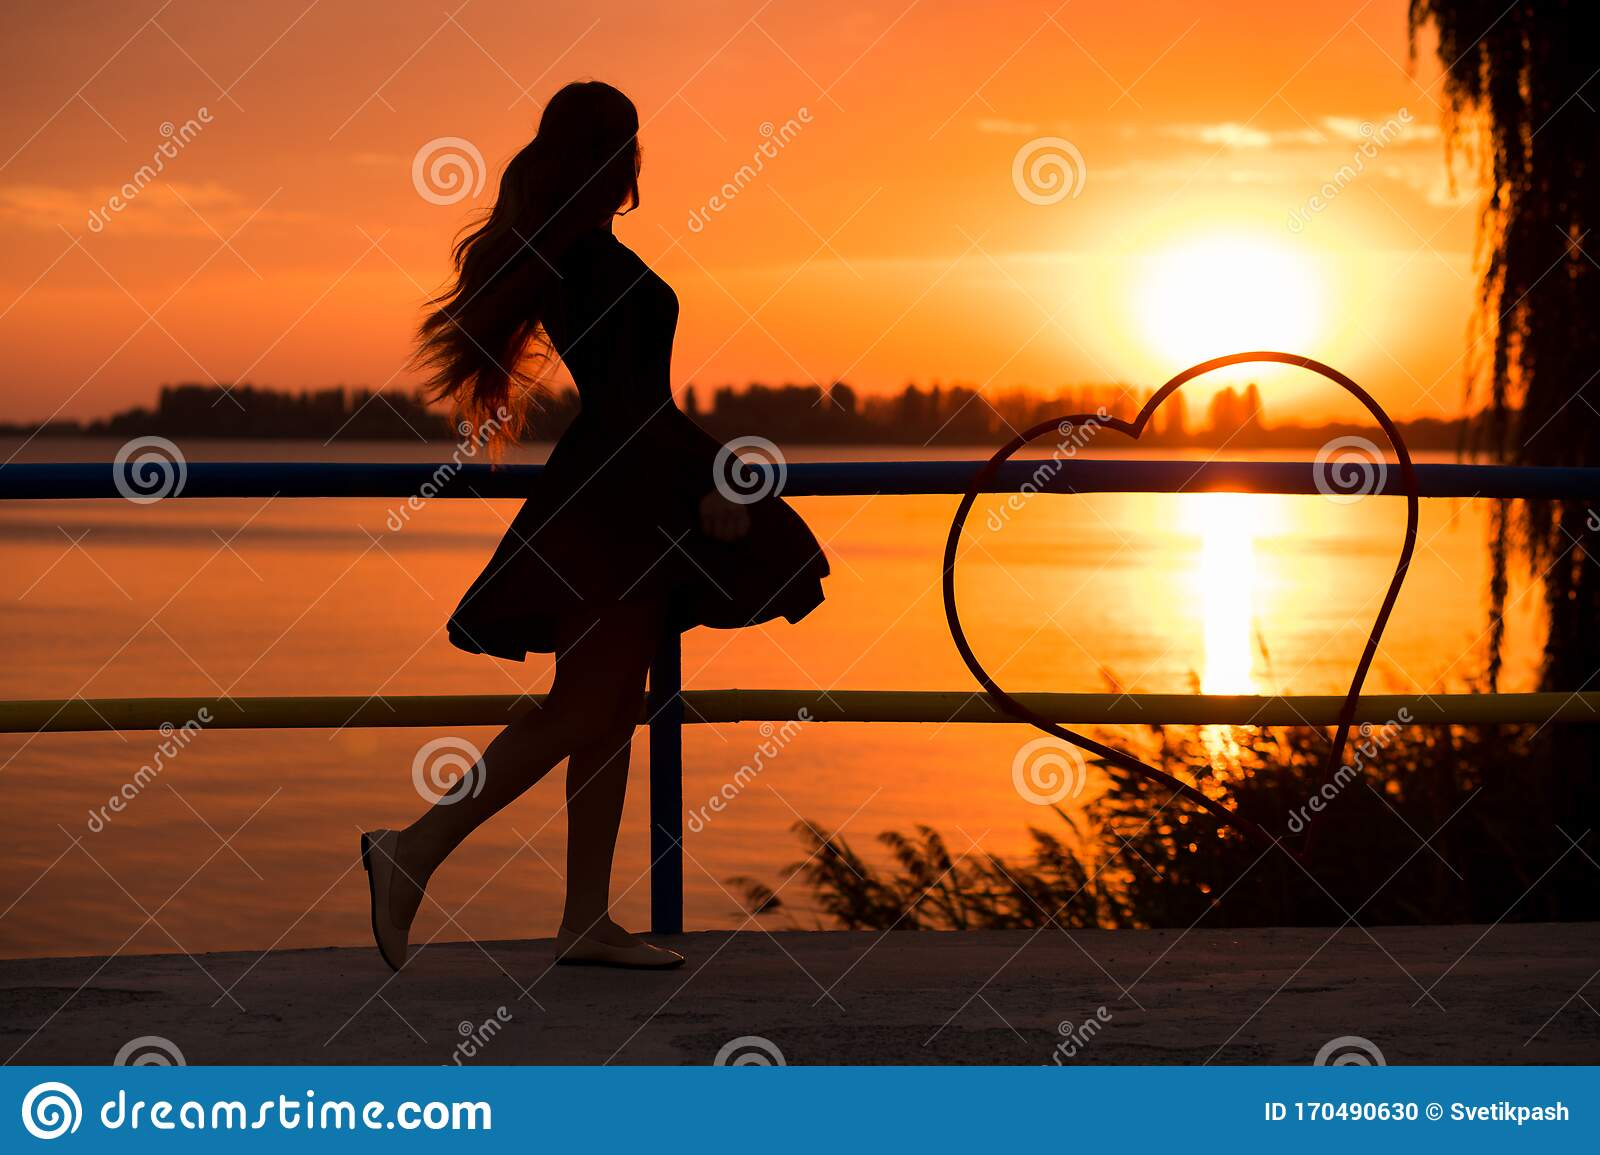 Side View Of Back Light Of A Woman Silhouette Breathing